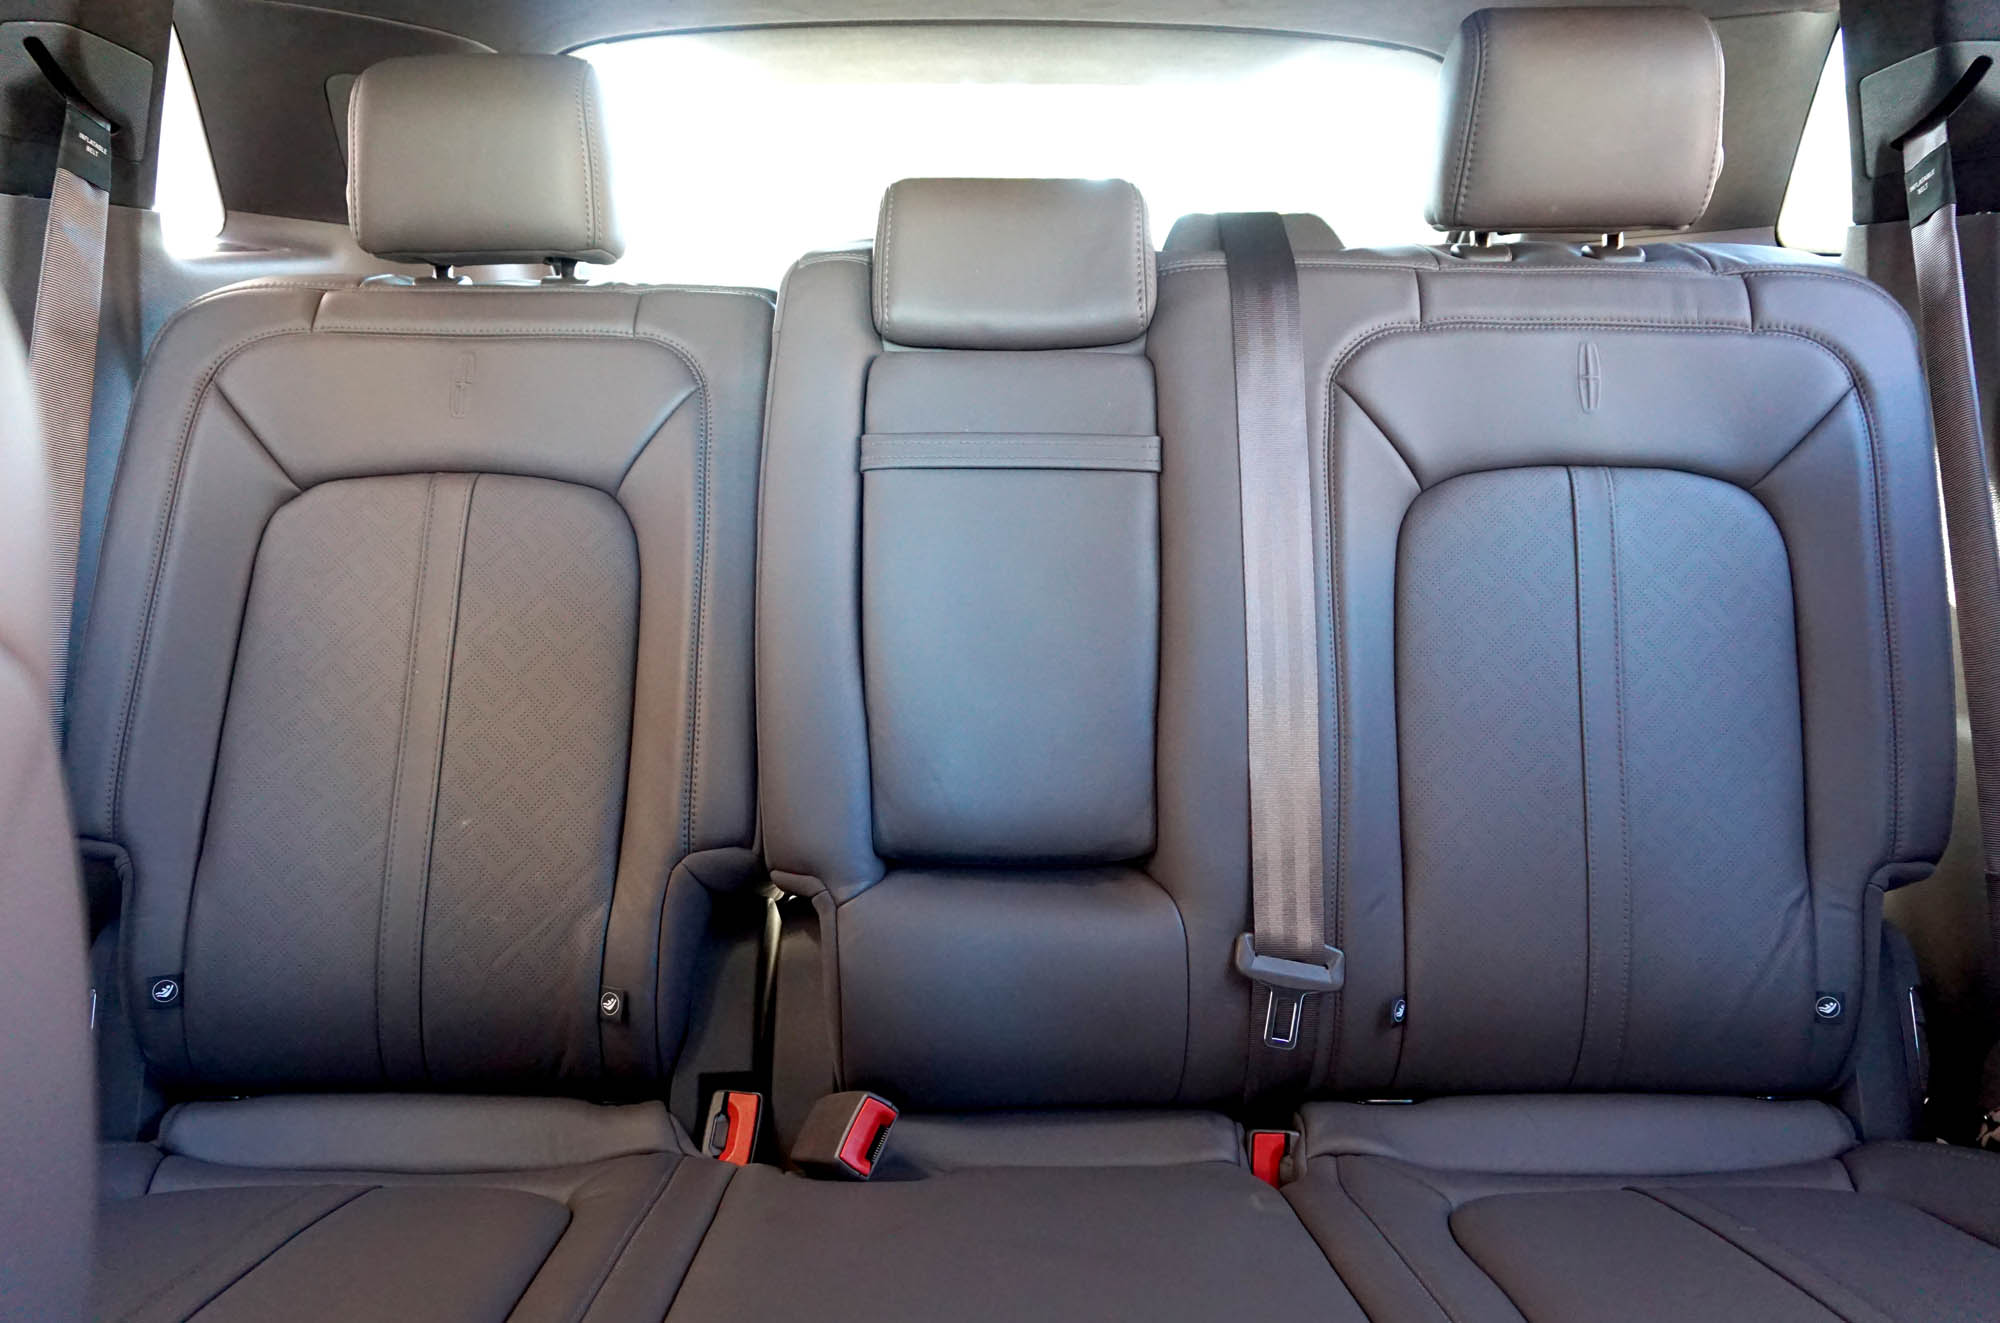 Lincoln MKX Interior Seats